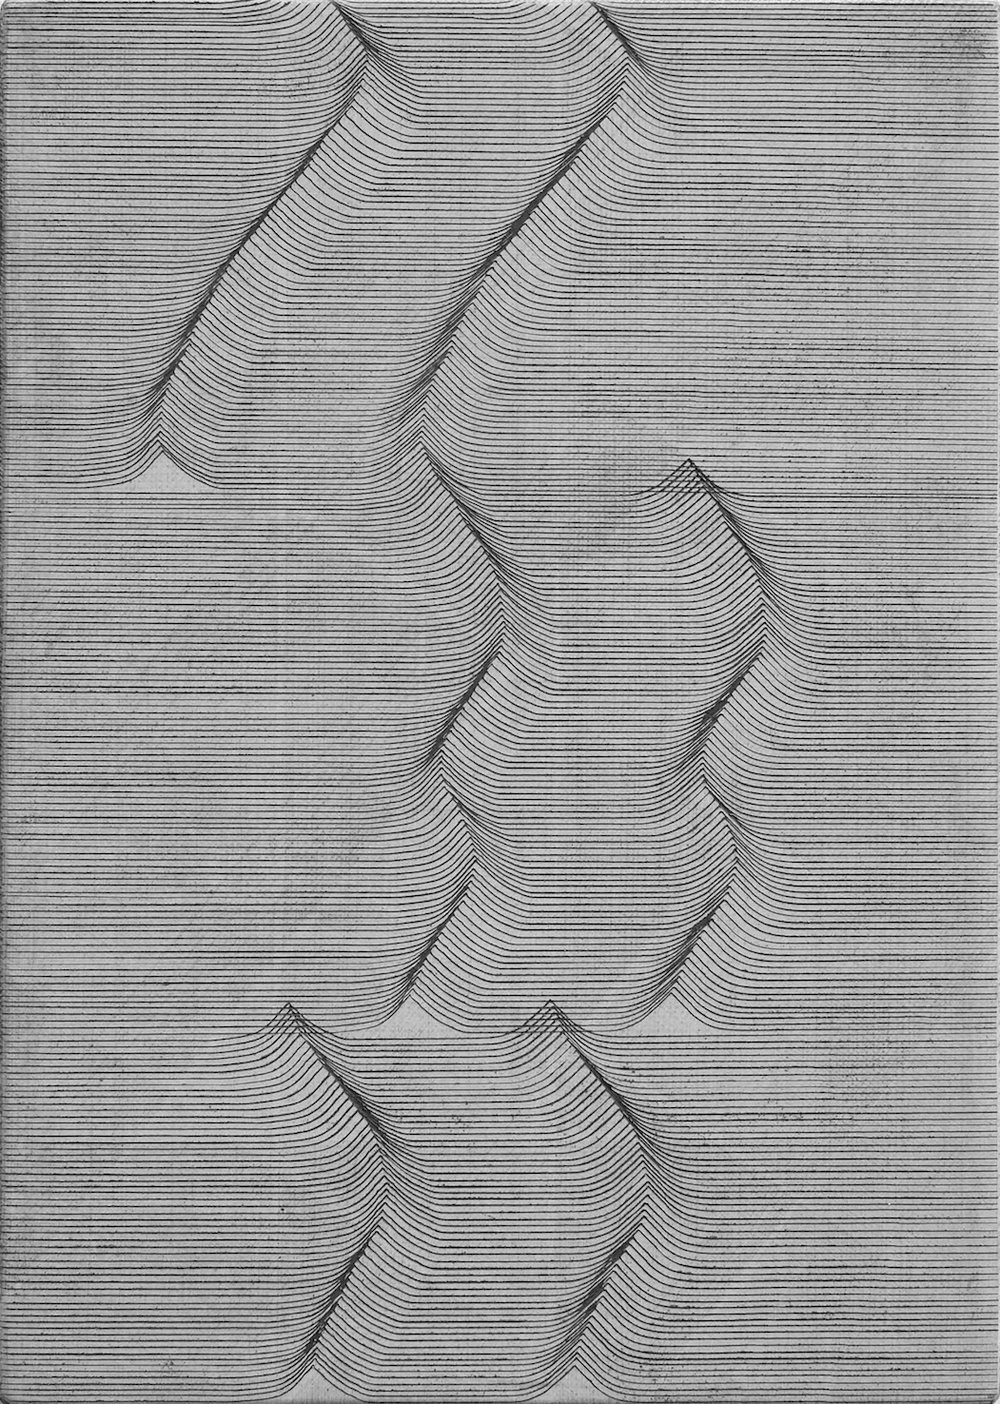 Long Ending (White) (2017)  Casein Paint and Scratches on Gesso Panel  30 x 21.5 x 2.5 cm